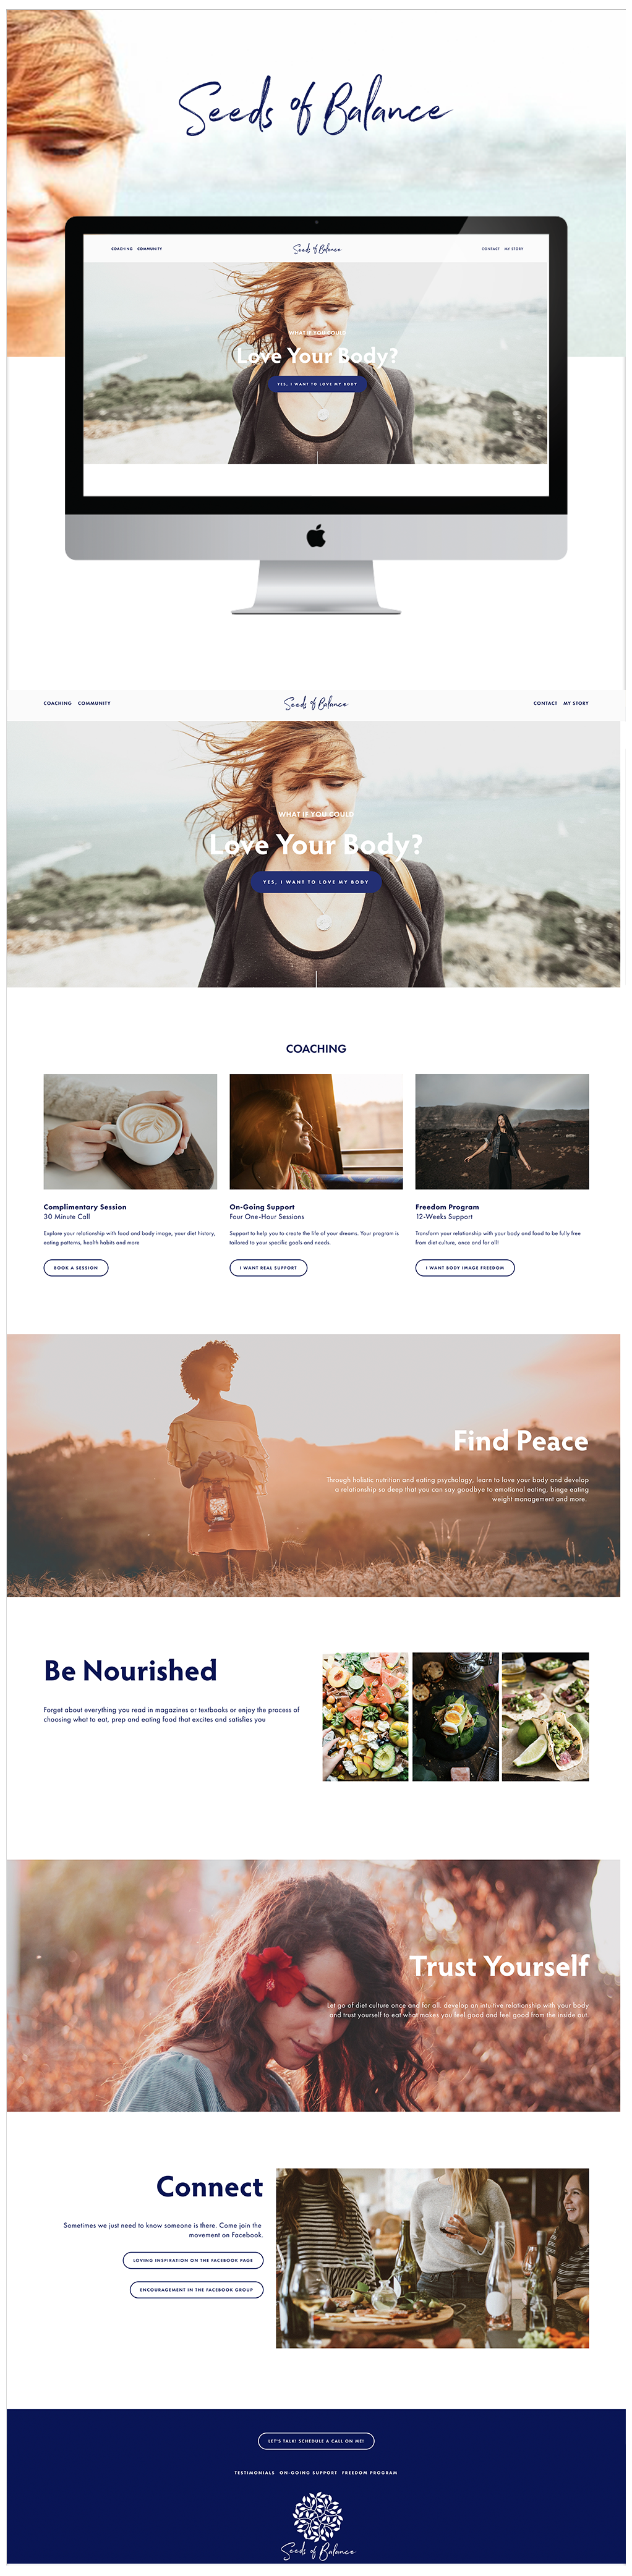 A modern gorgeous website on Squarespace for Seeds of Balance #modern #gorgeous #squarespace